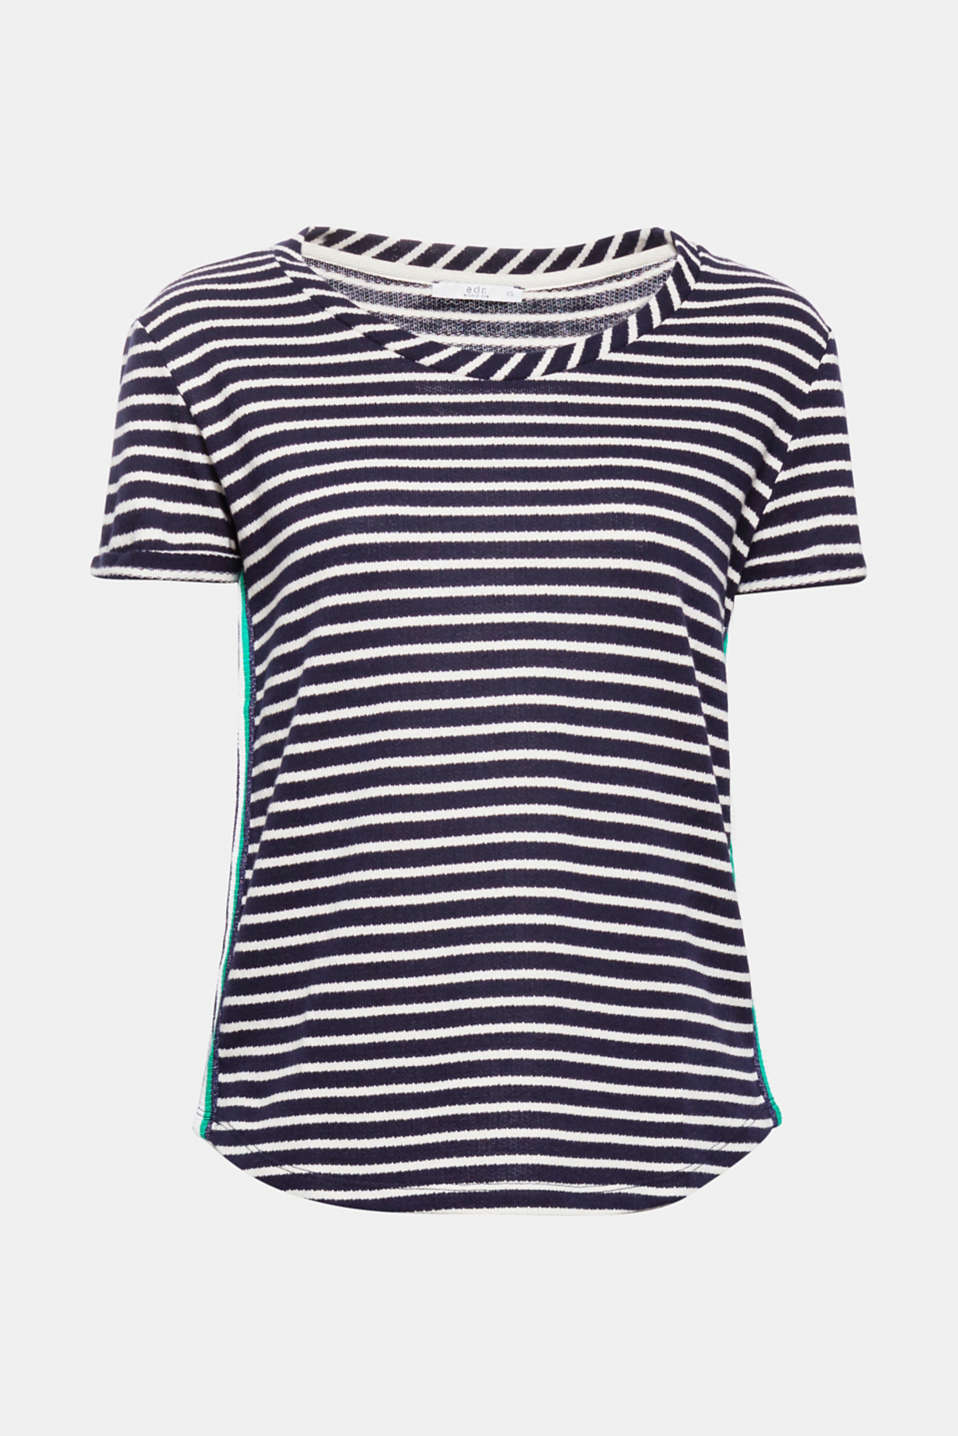 The slightly thicker jersey, two-tone, all-over stripes and the appliquéd racing stripes on the sides give this cotton top a trendy, sporty look!